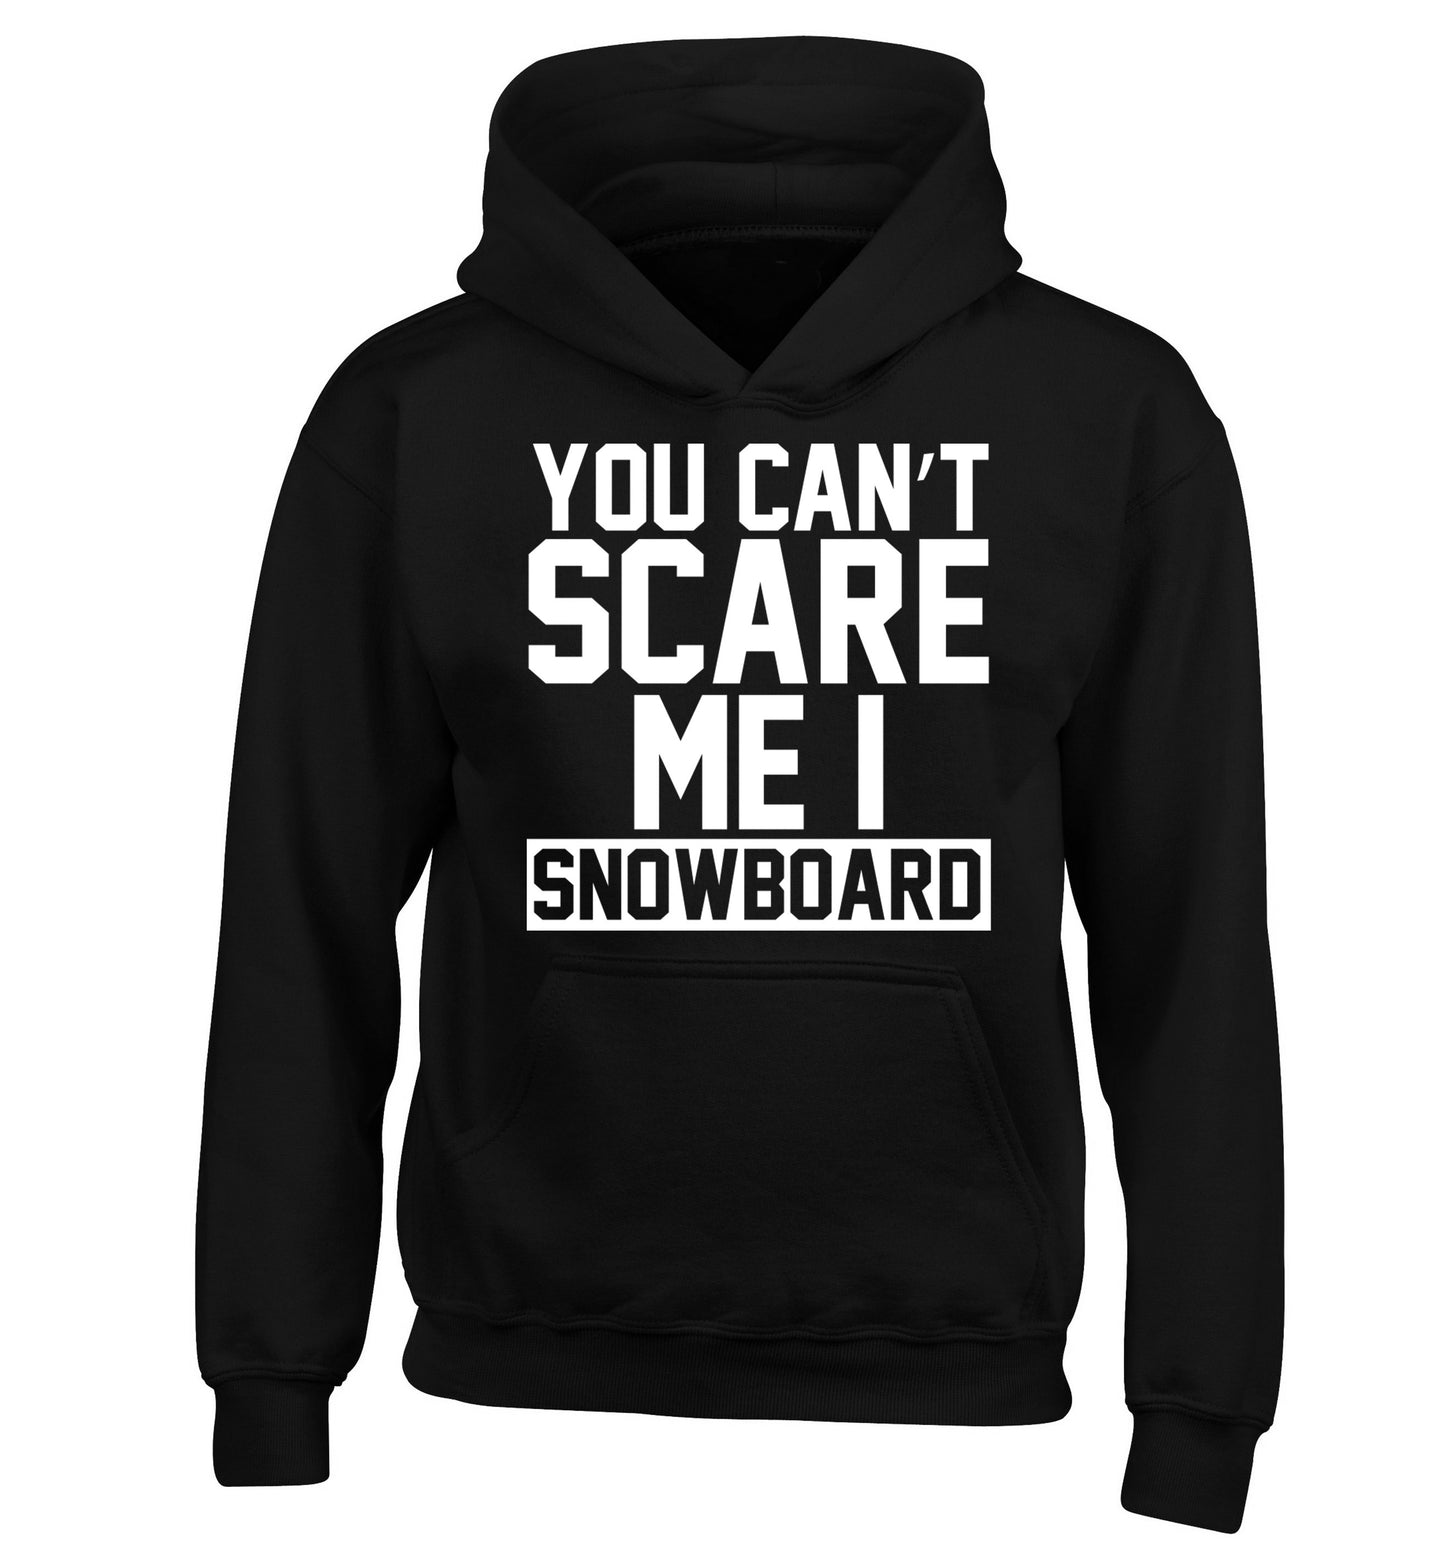 You can't scare me I snowboard children's black hoodie 12-14 Years